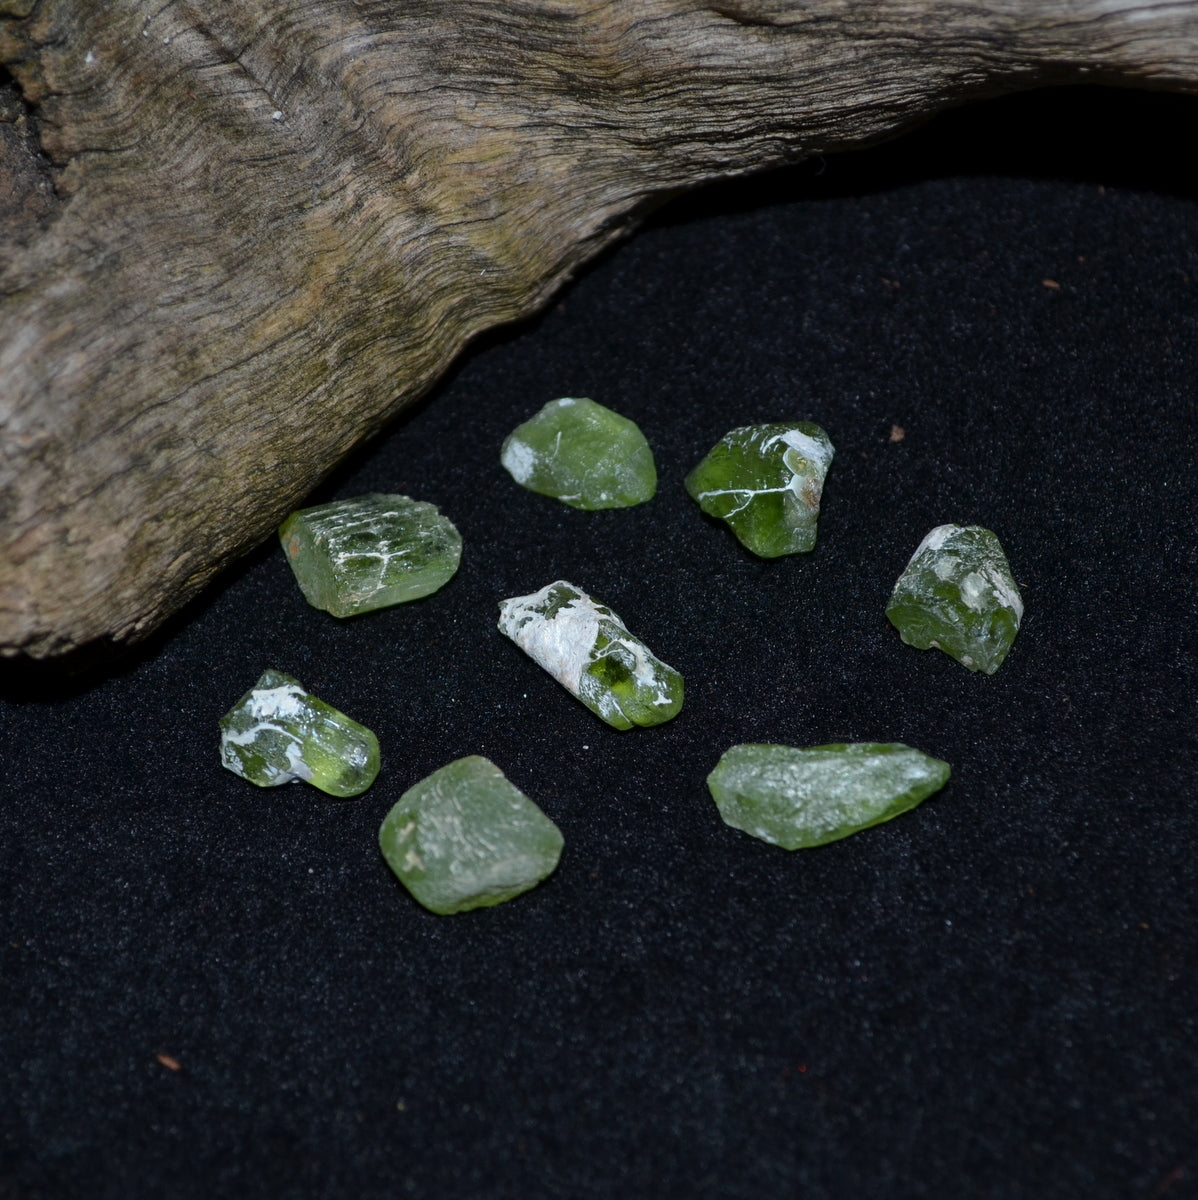 Peridot Natural Crystals - Positive Relationships Understanding Abundance - Shop Now at Illiom Crystals - We have Afterpay